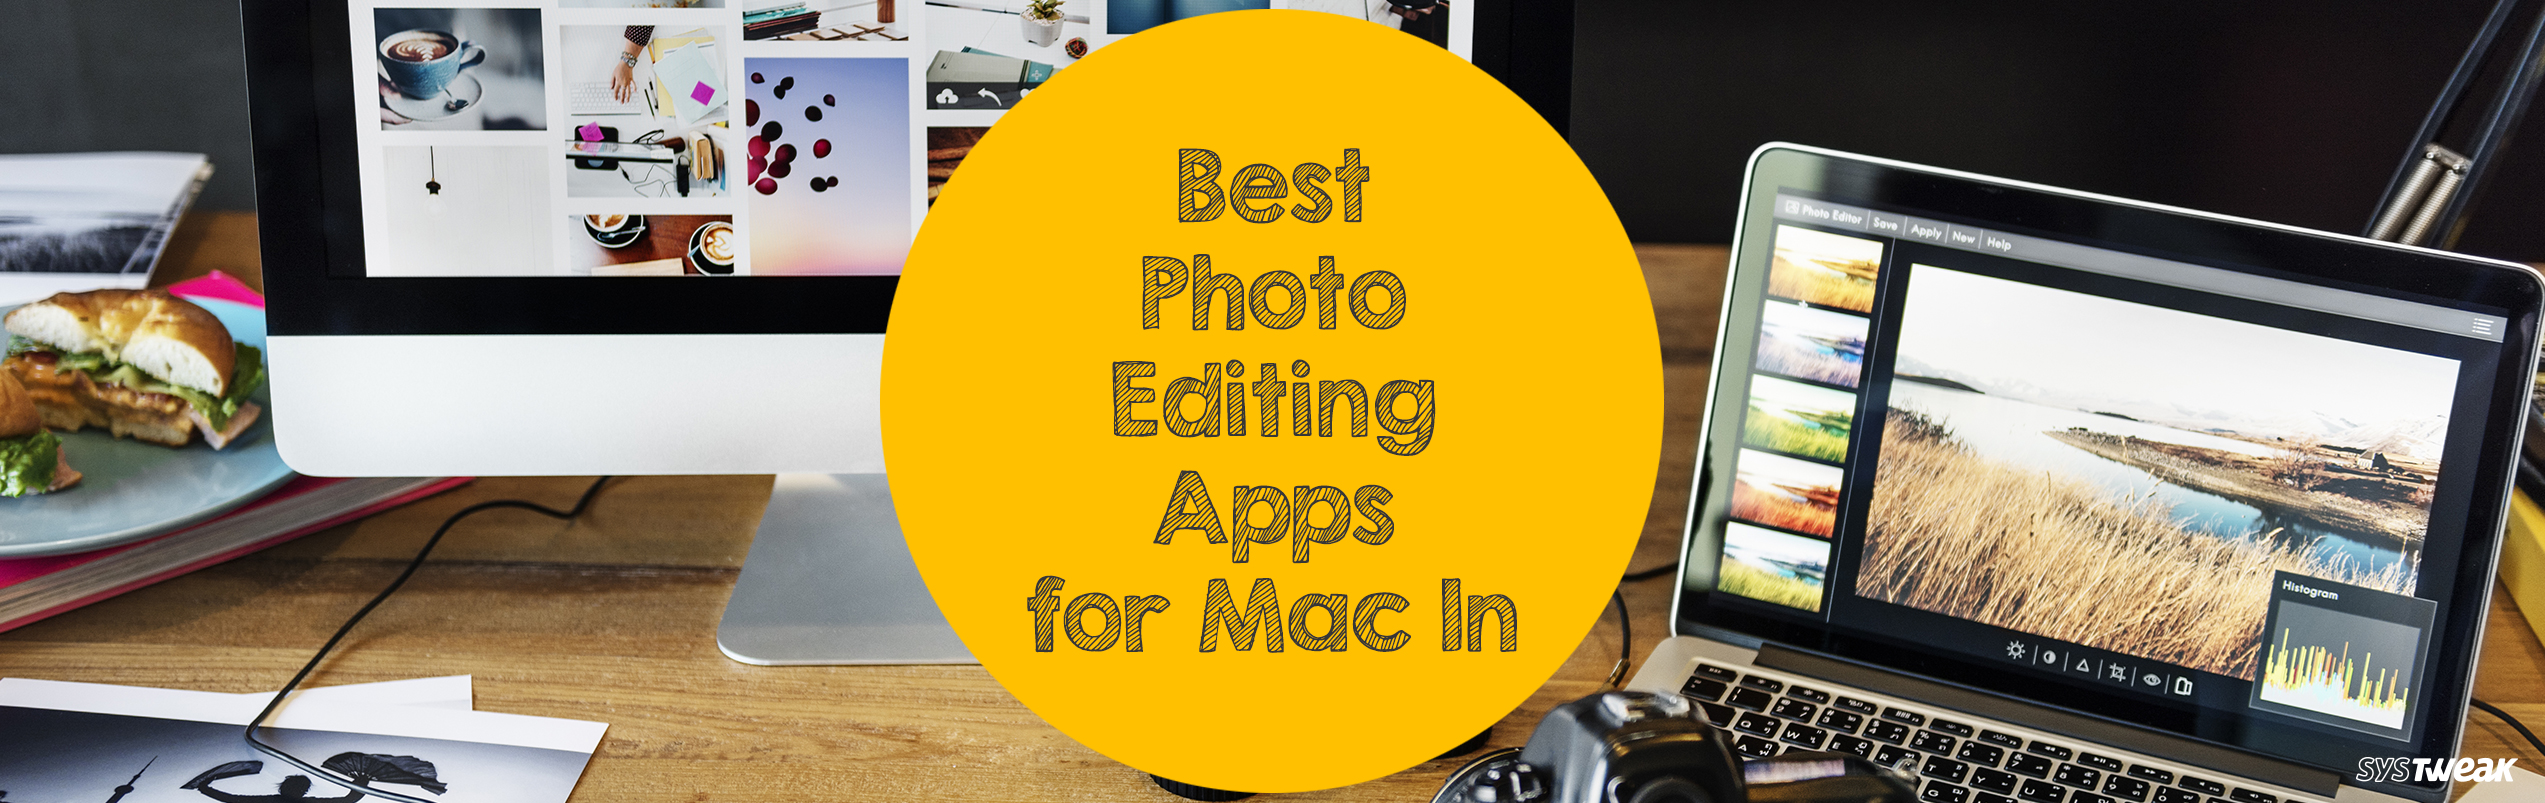 15 Best Photo Editing Apps for Mac 2018